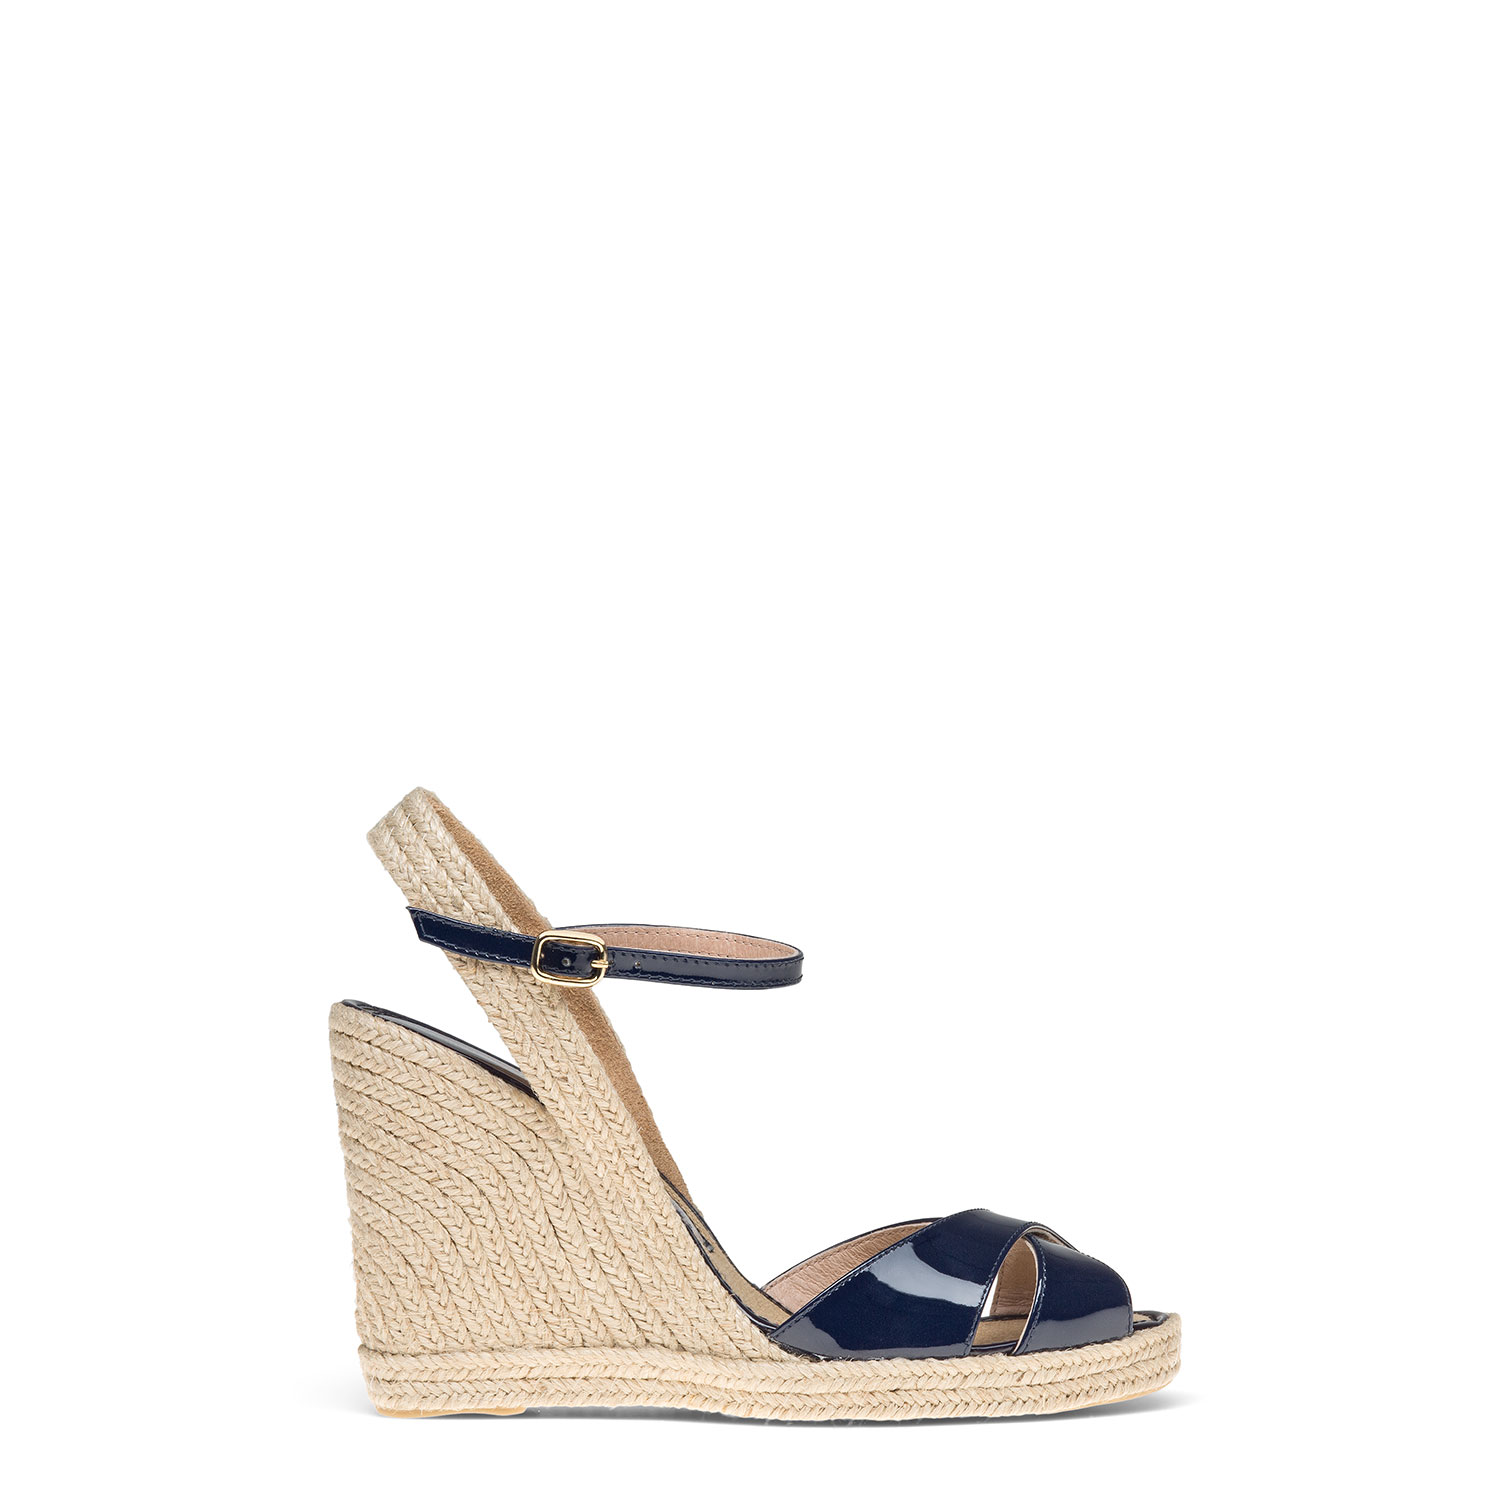 Women's sandals CARLO PAZOLINI CT-HAL3-6